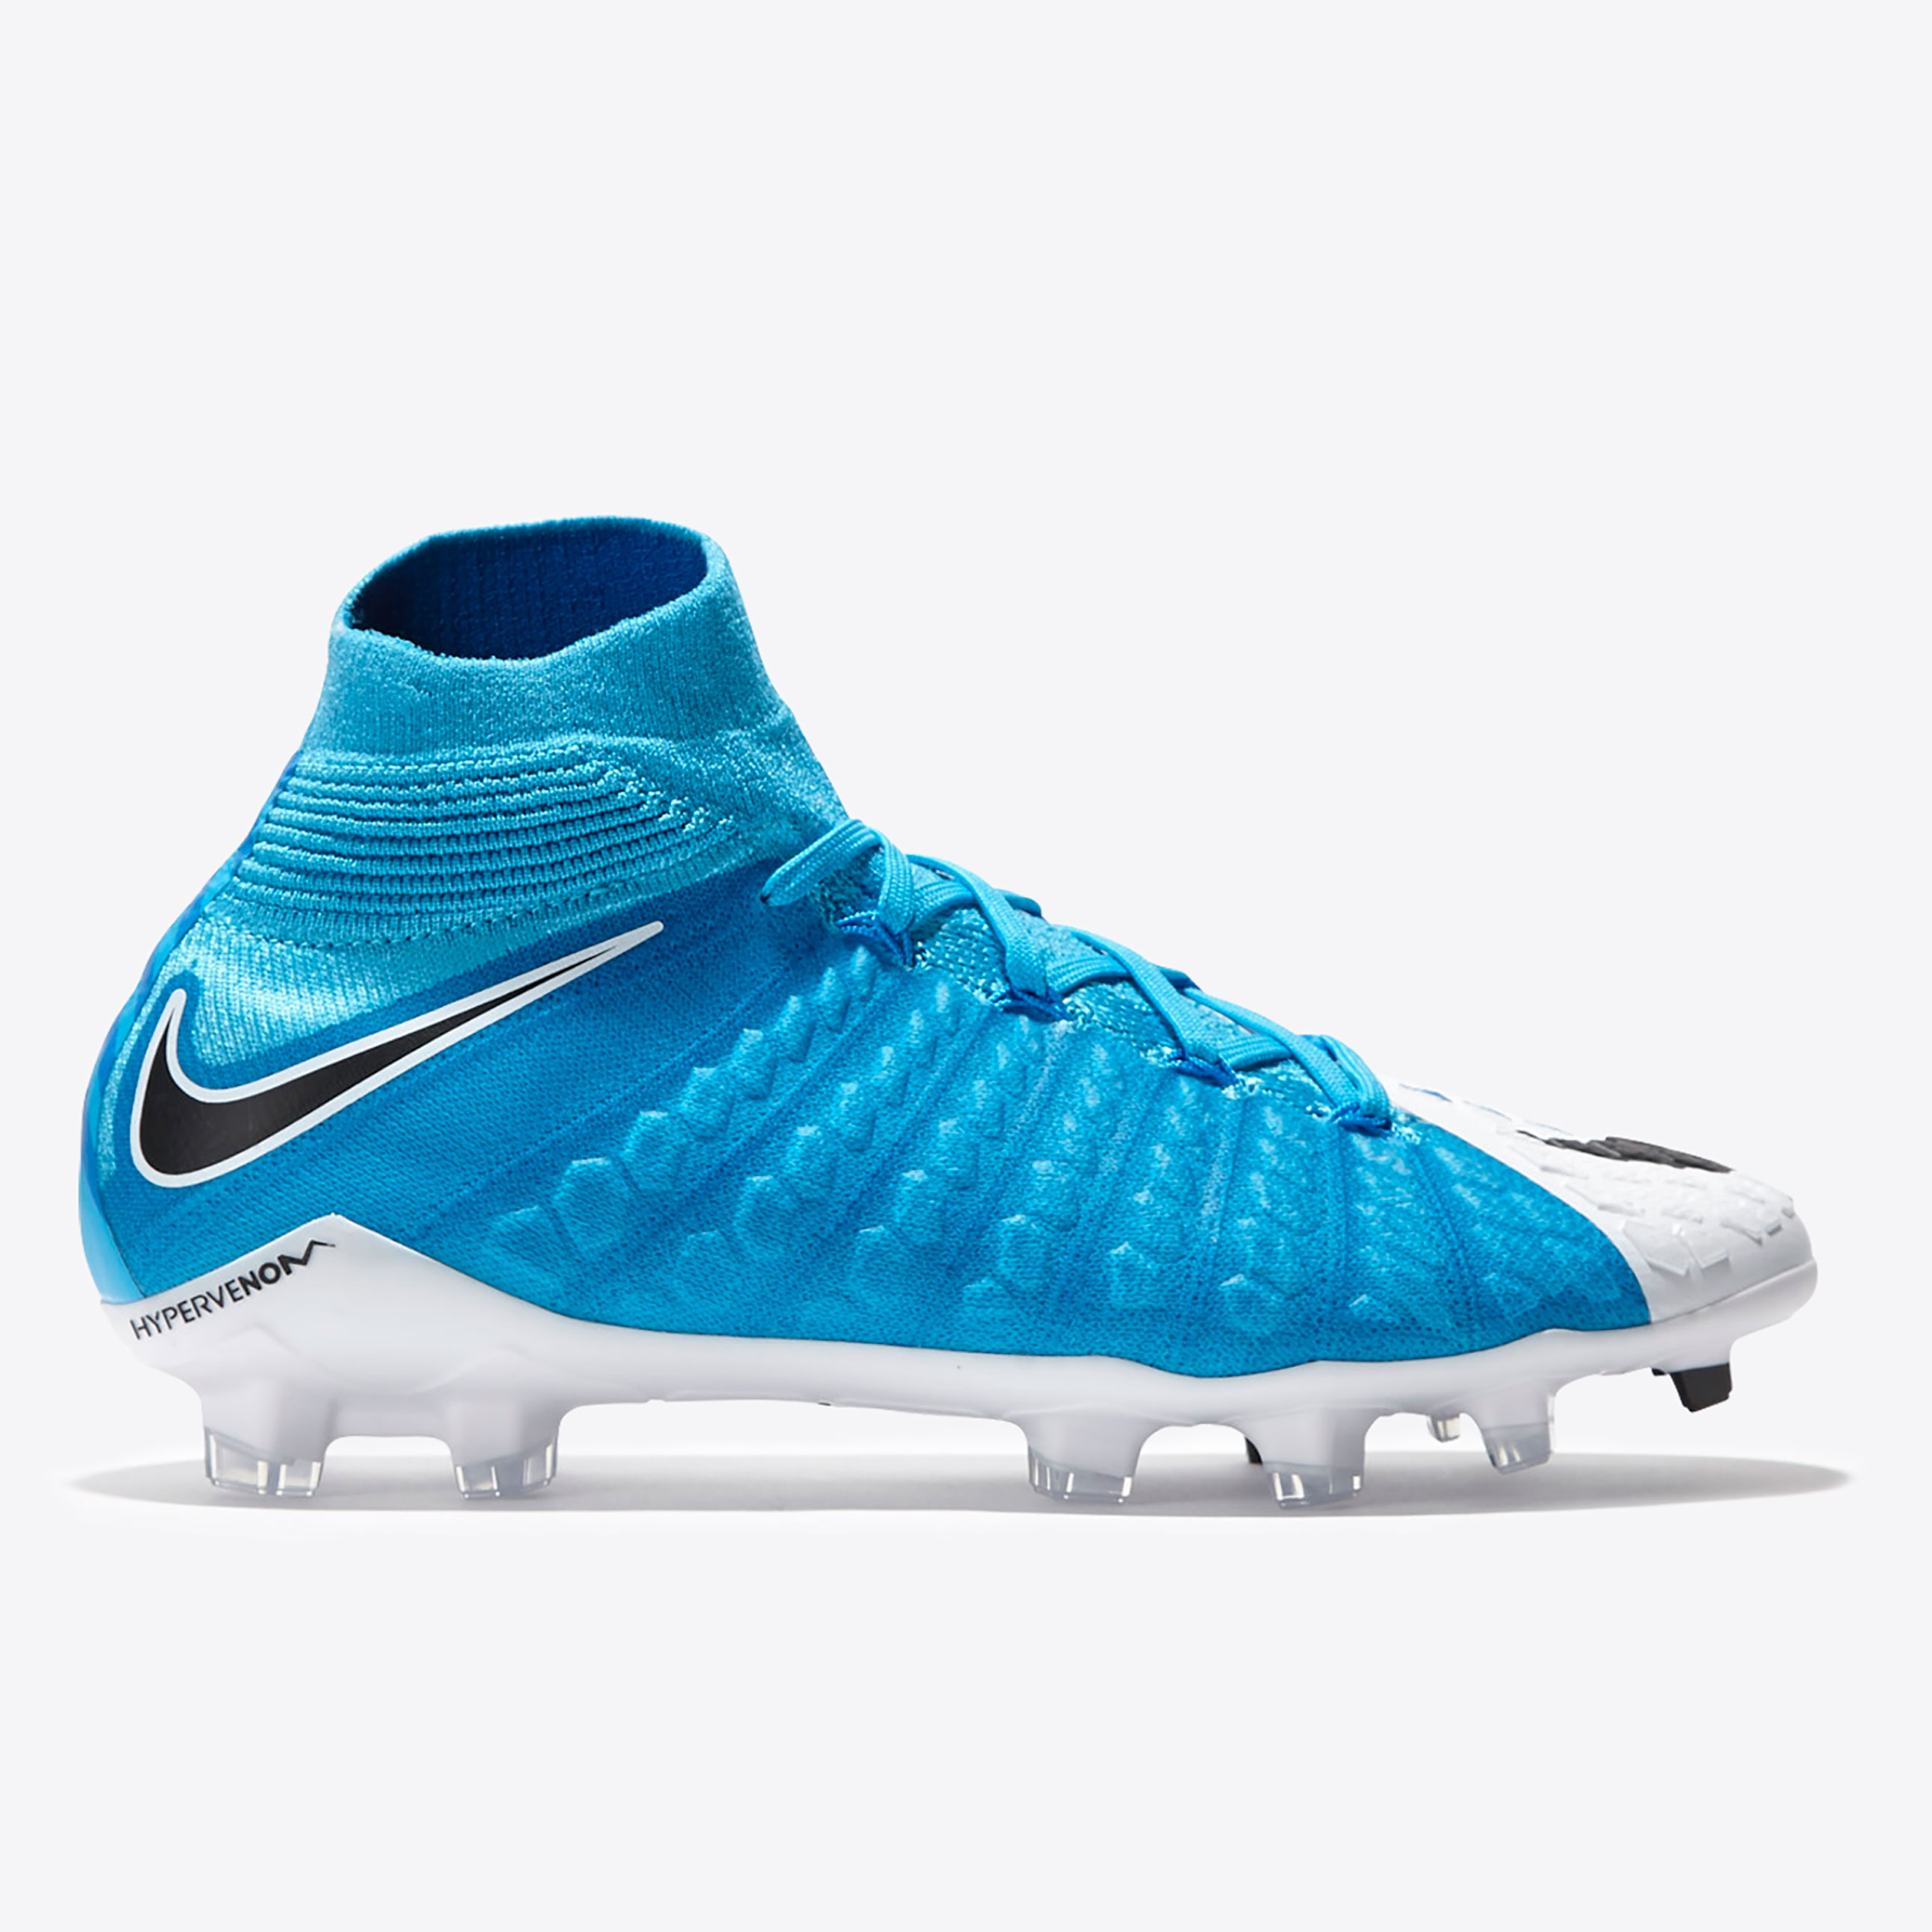 6cd8a54dc Buy Nike Hypervenom Rugby Boots - compare prices